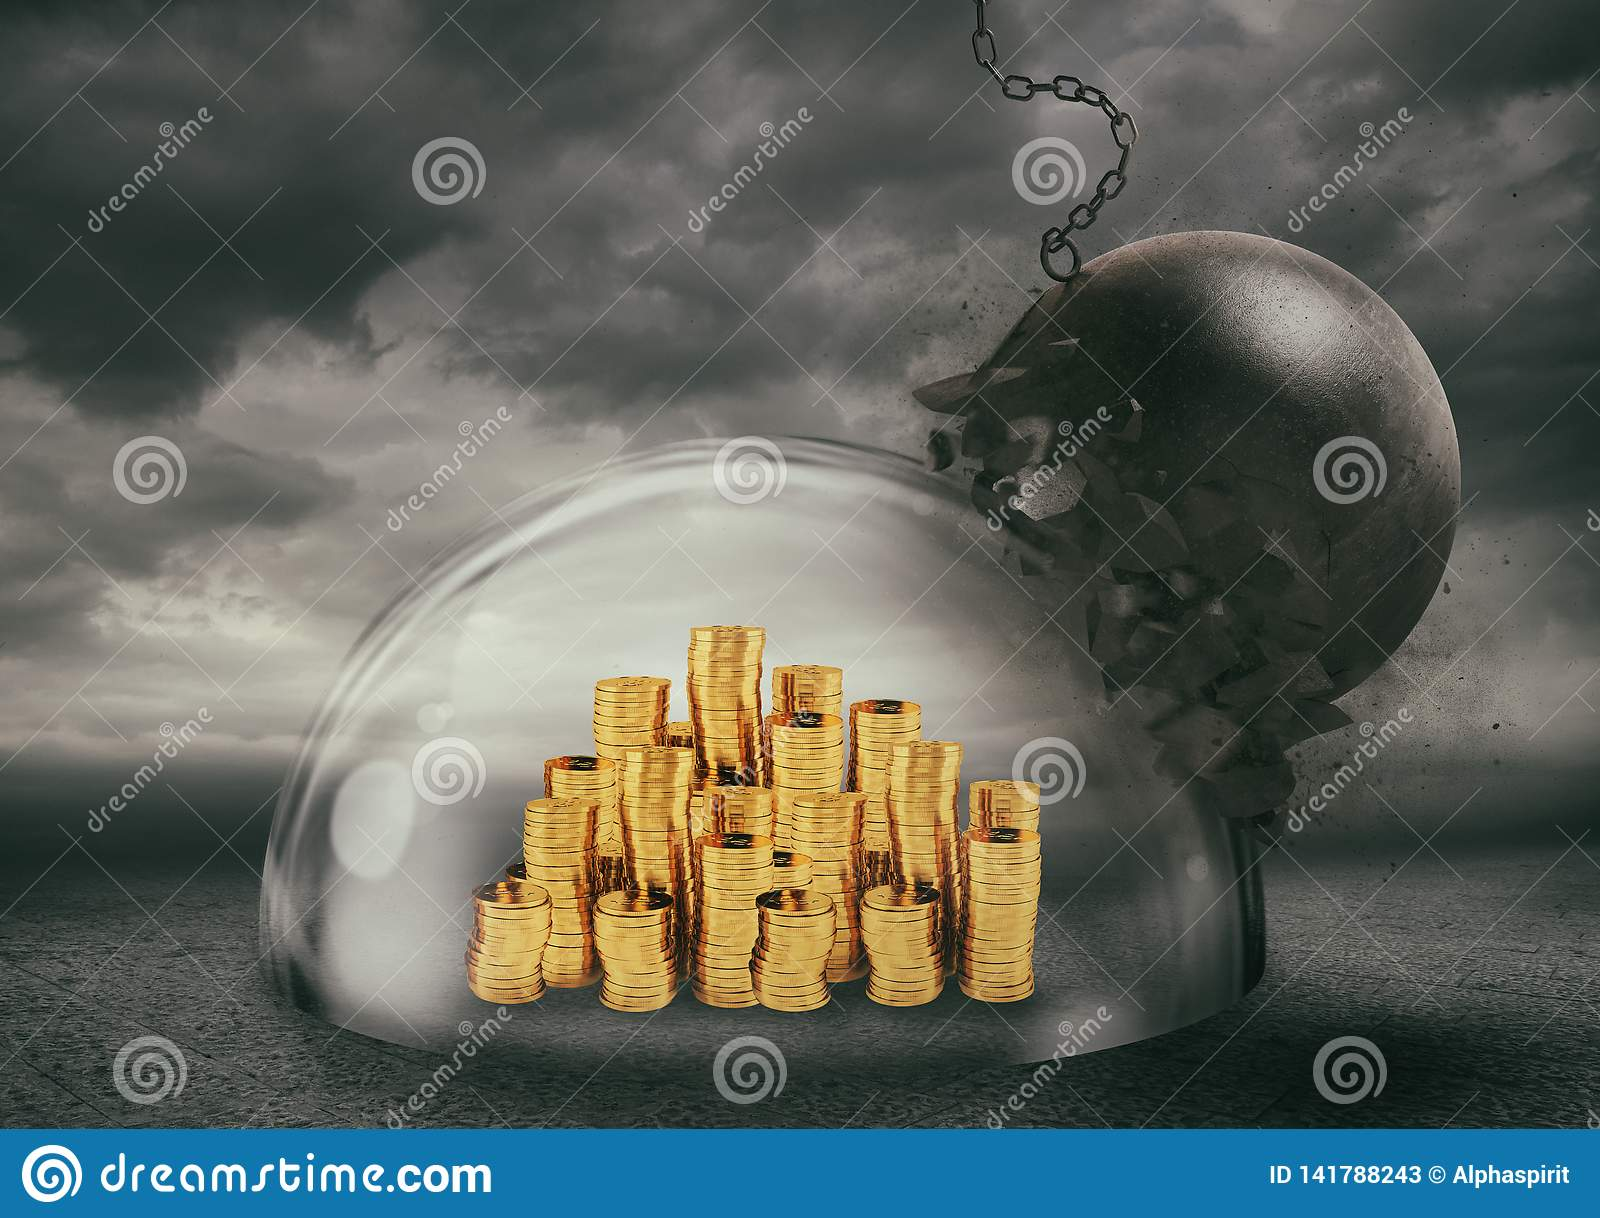 Coins safely inside a shield dome during a storm that protects them from a wrecking ball. Protection and safety concept